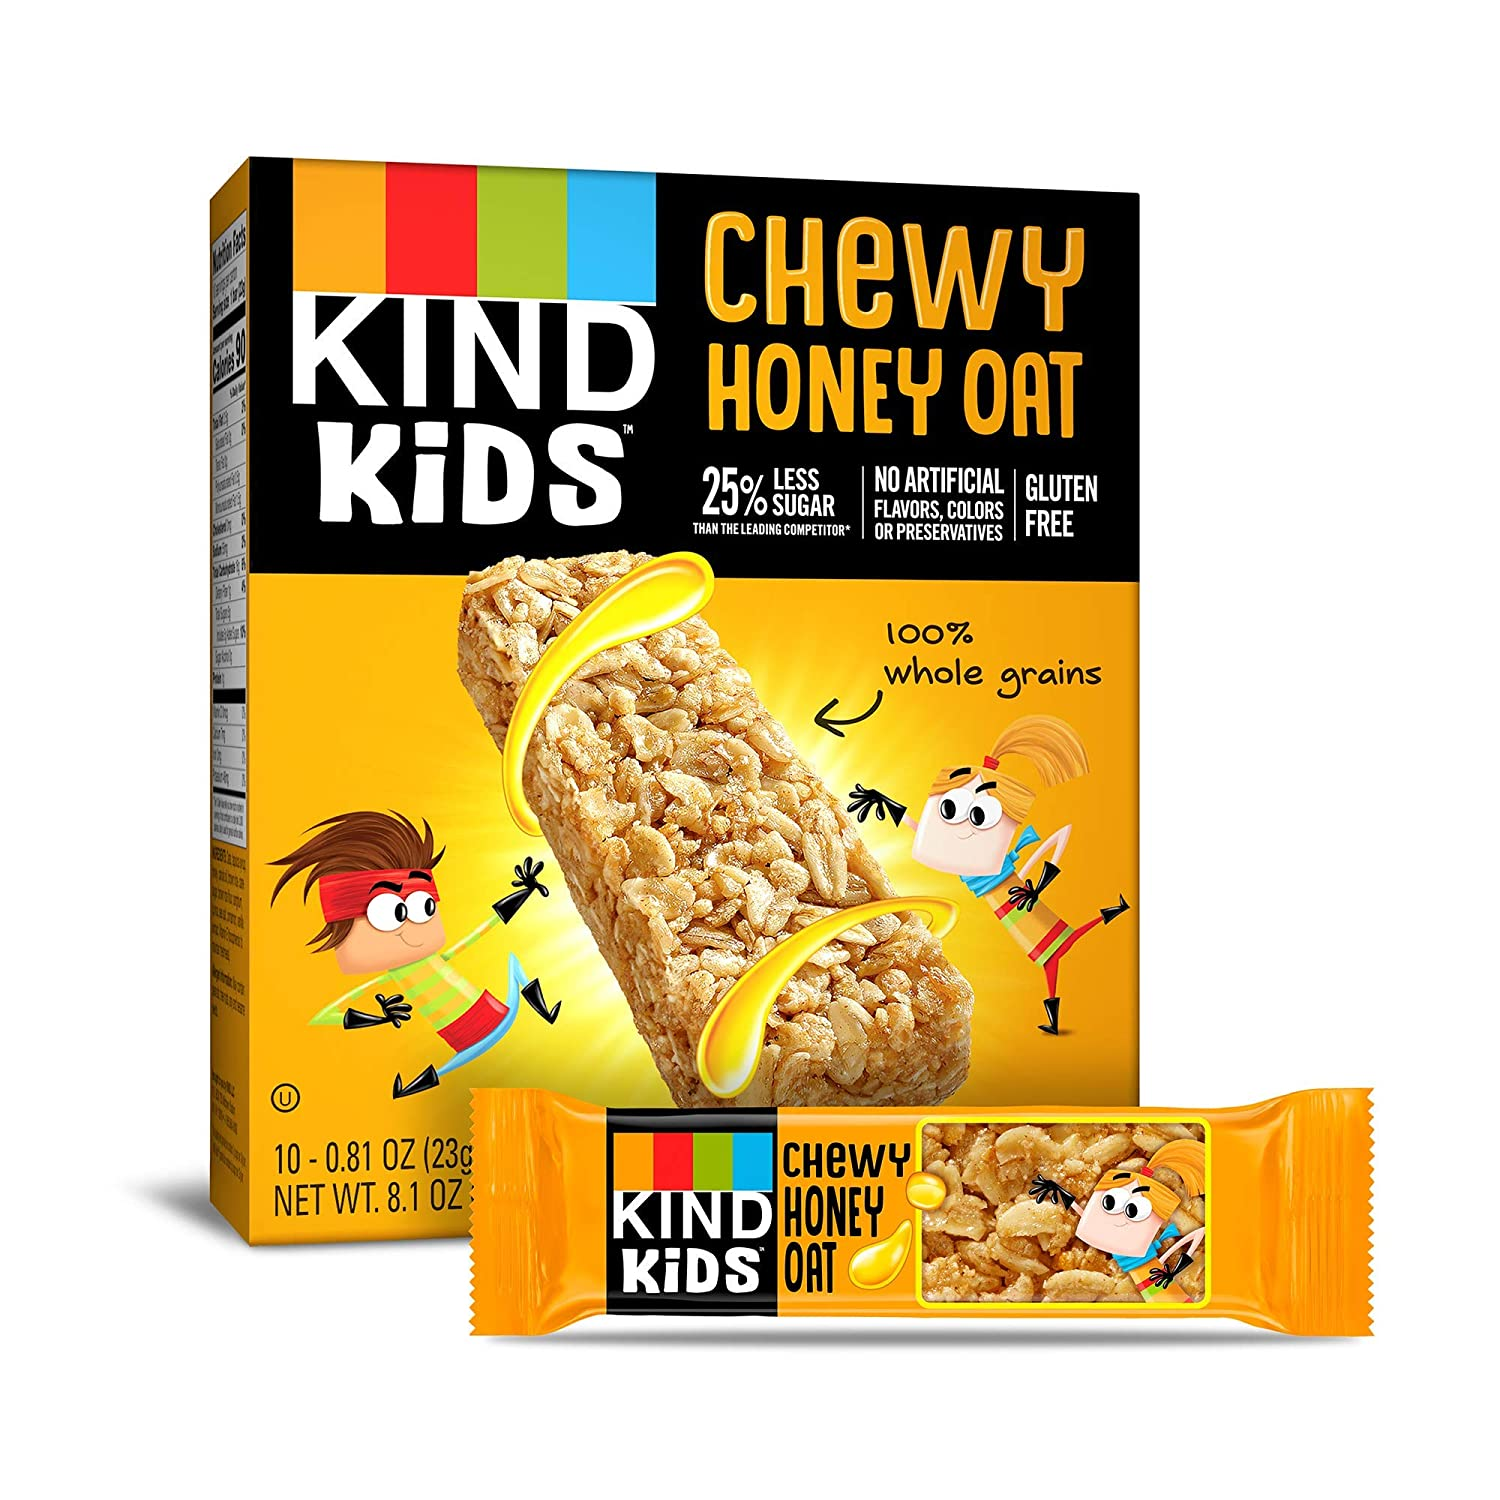 KIND Kids Granola Chewy Bar, Honey Oat, 10 Count (6 Pack)